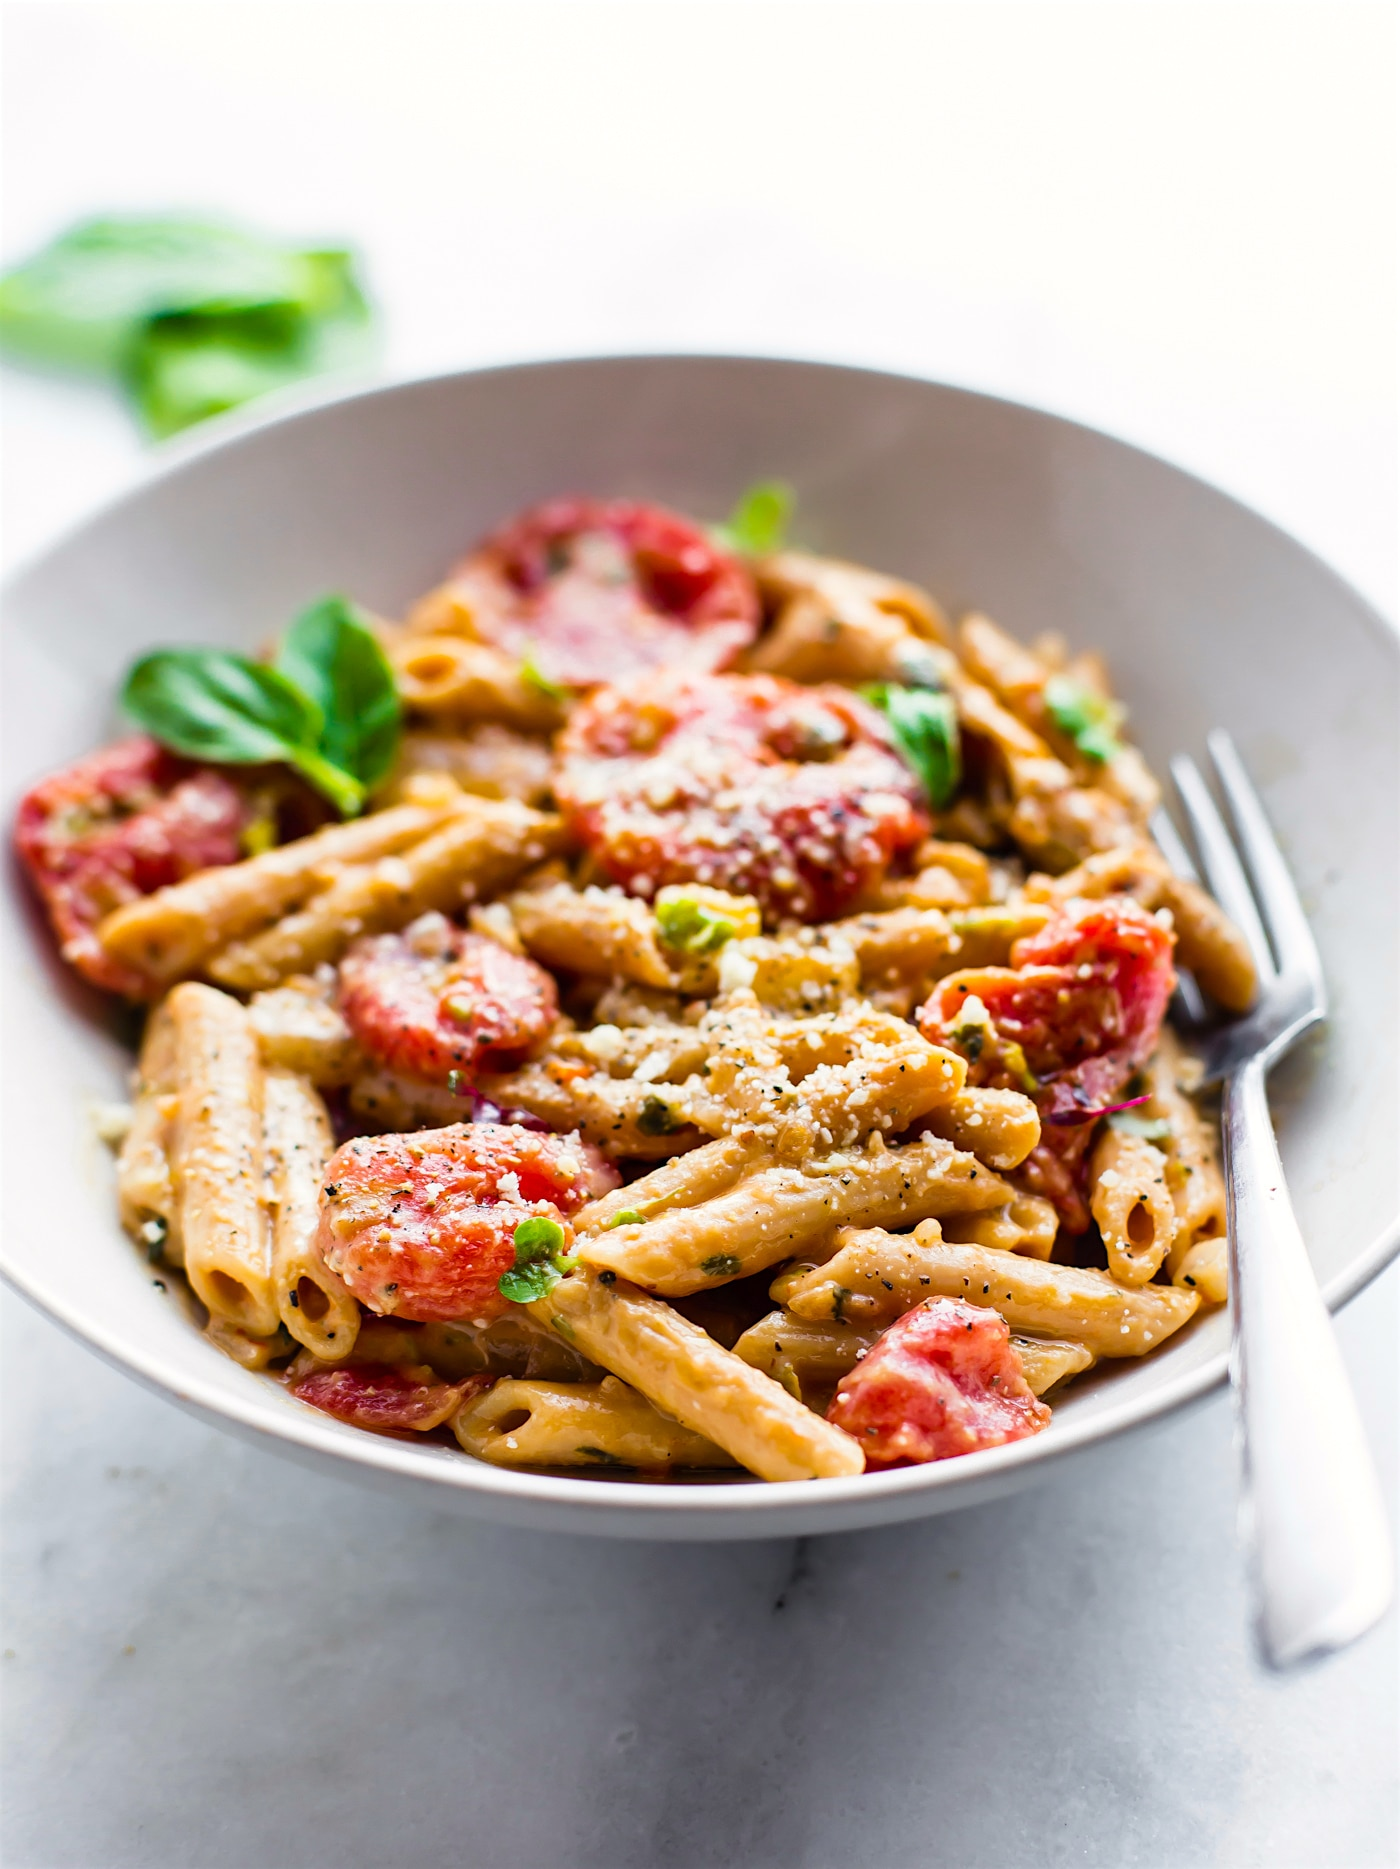 A Creamy Tomato Gluten Free Penne Pasta dish that's ready in 25 minutes, delicious, and dairy free. This gluten free penne pasta recipe is perfect for those who are new to gluten free or are looking for a lighter pasta dish alternative! It's protein packed vegetarian pasta with a healthy amount of plant based Iron.